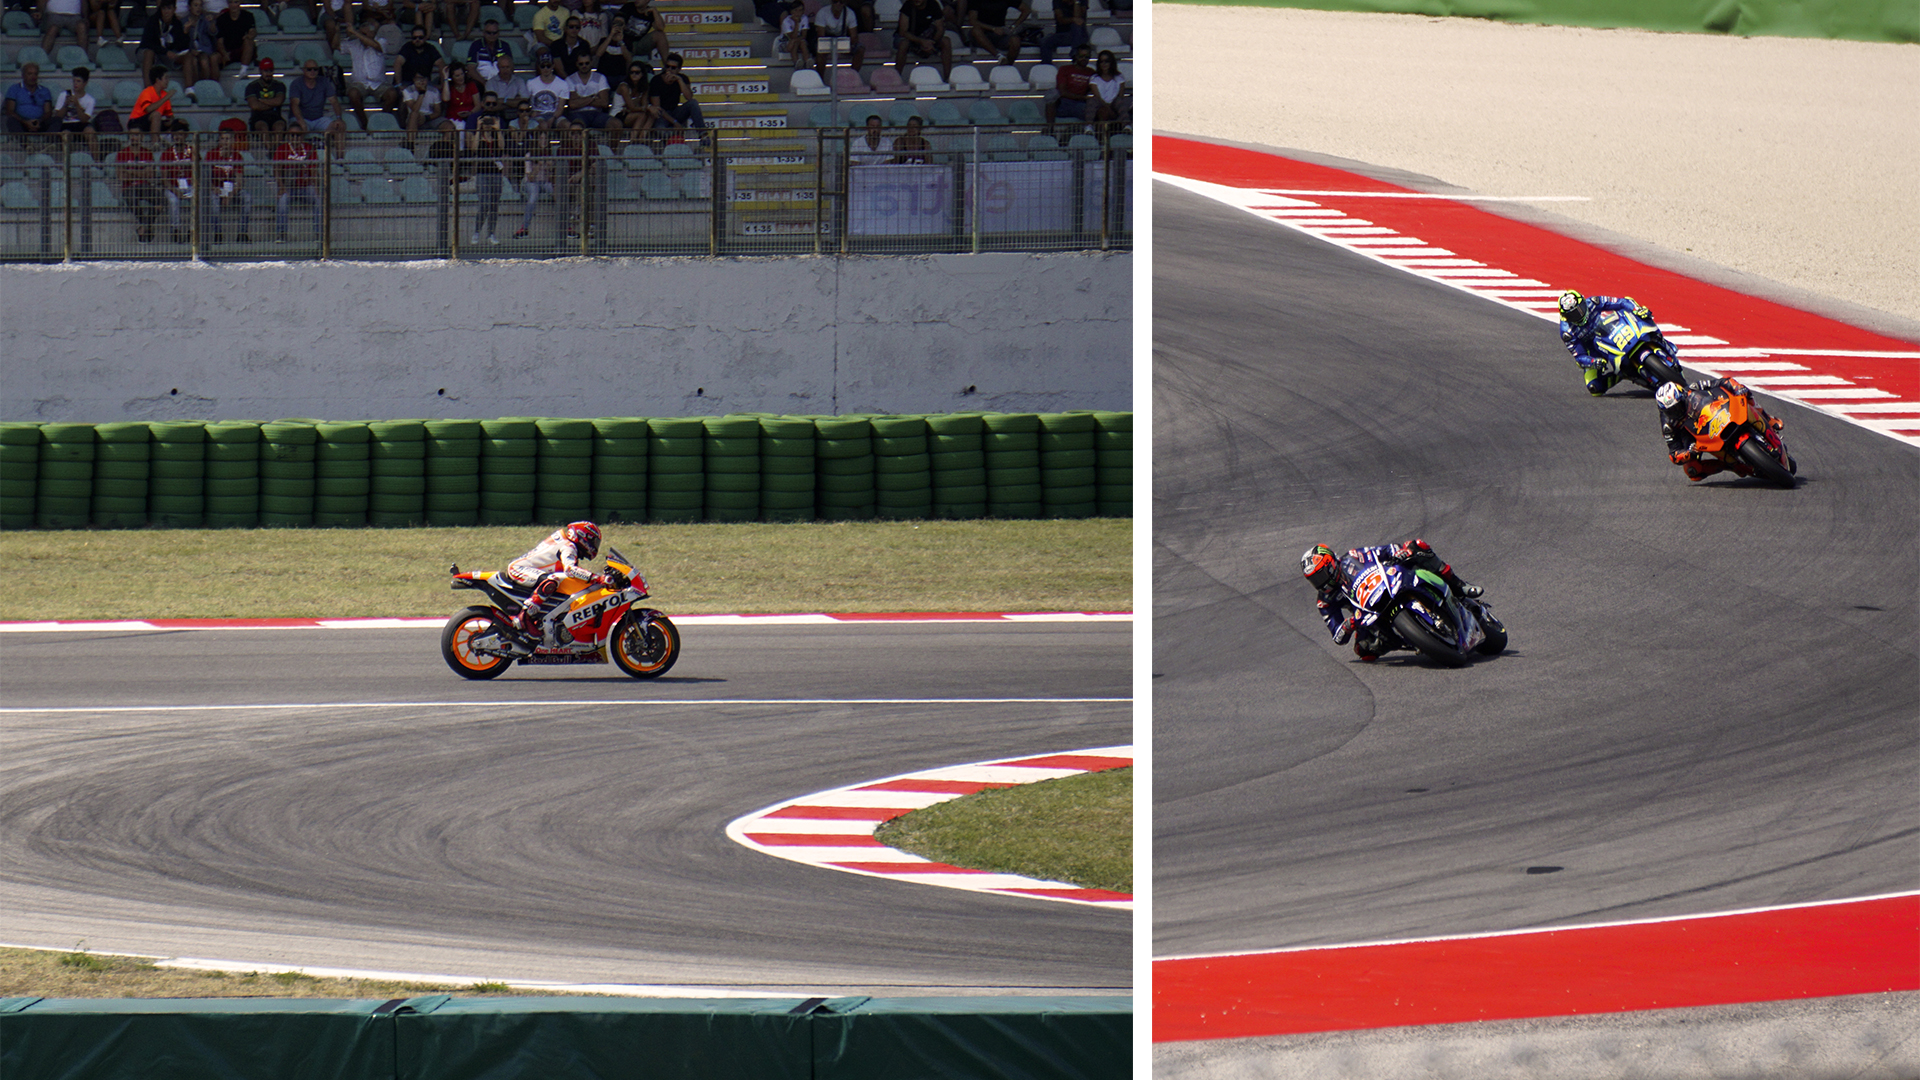 The San Marino MotoGP, which took place at the Misano World Circuit Marco Simoncelli.